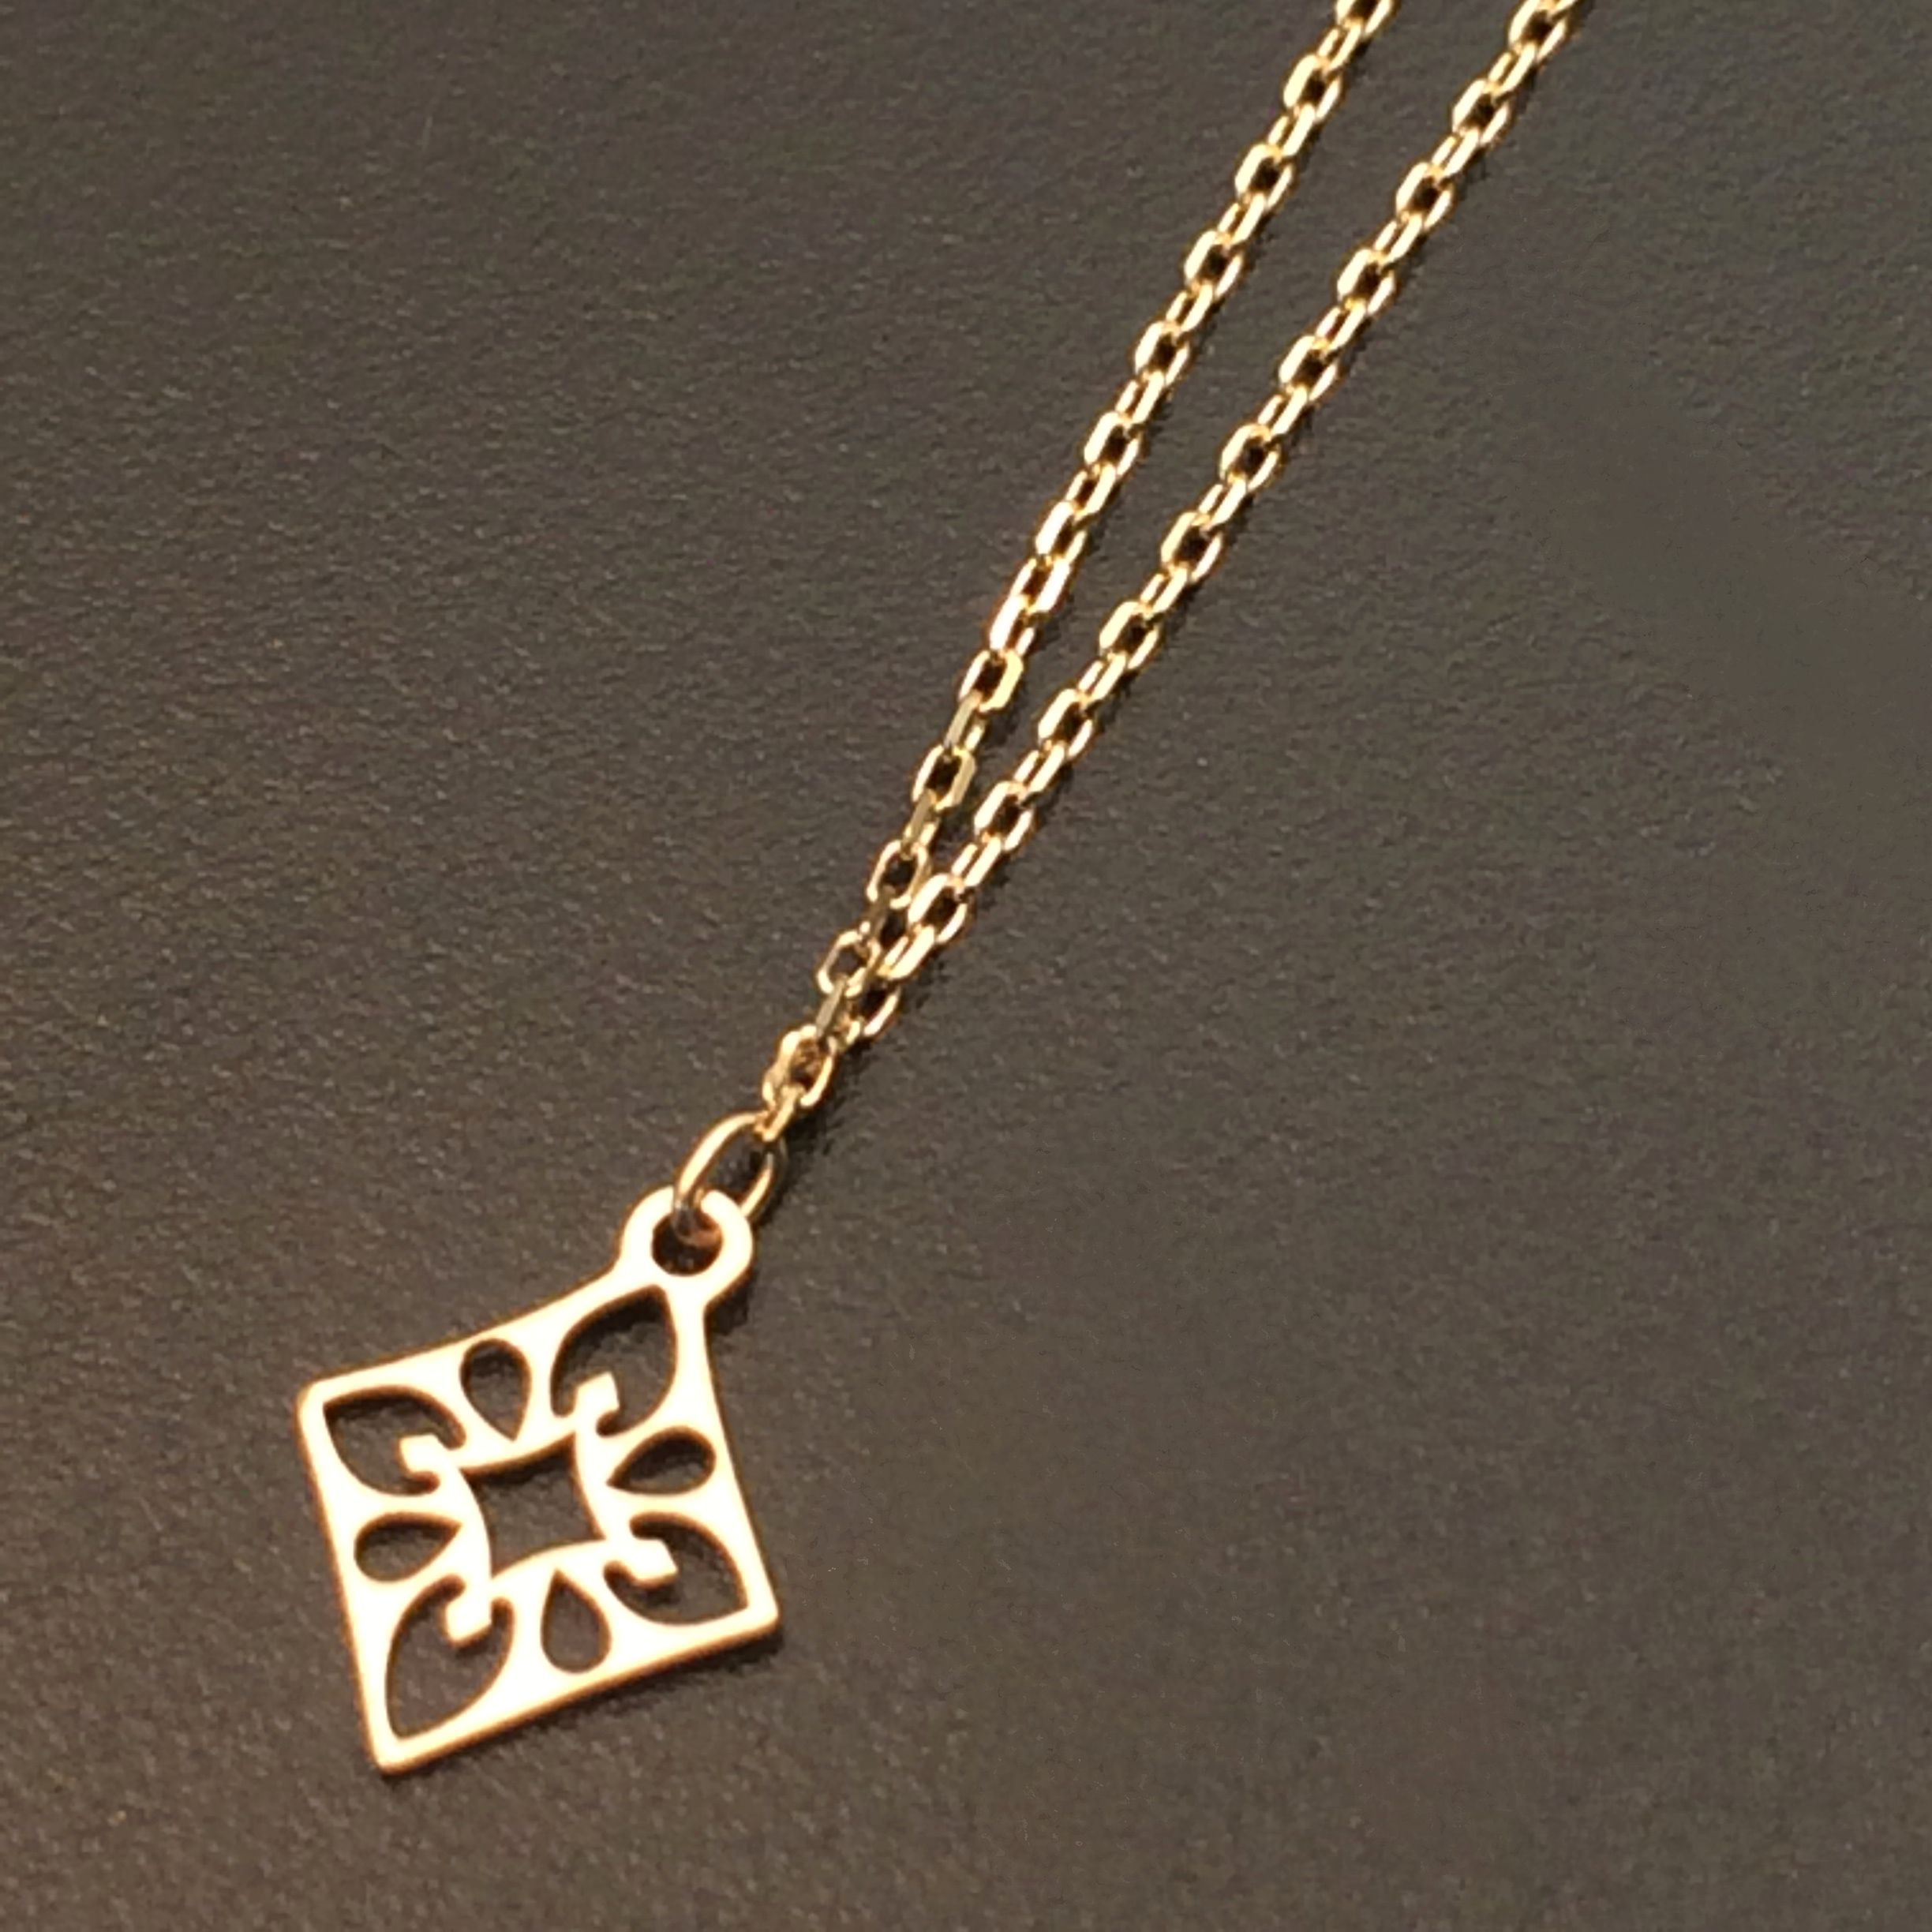 k10 solid gold dainty necklace delicate necklace everyday jewelry minimalist jewelry $120.00